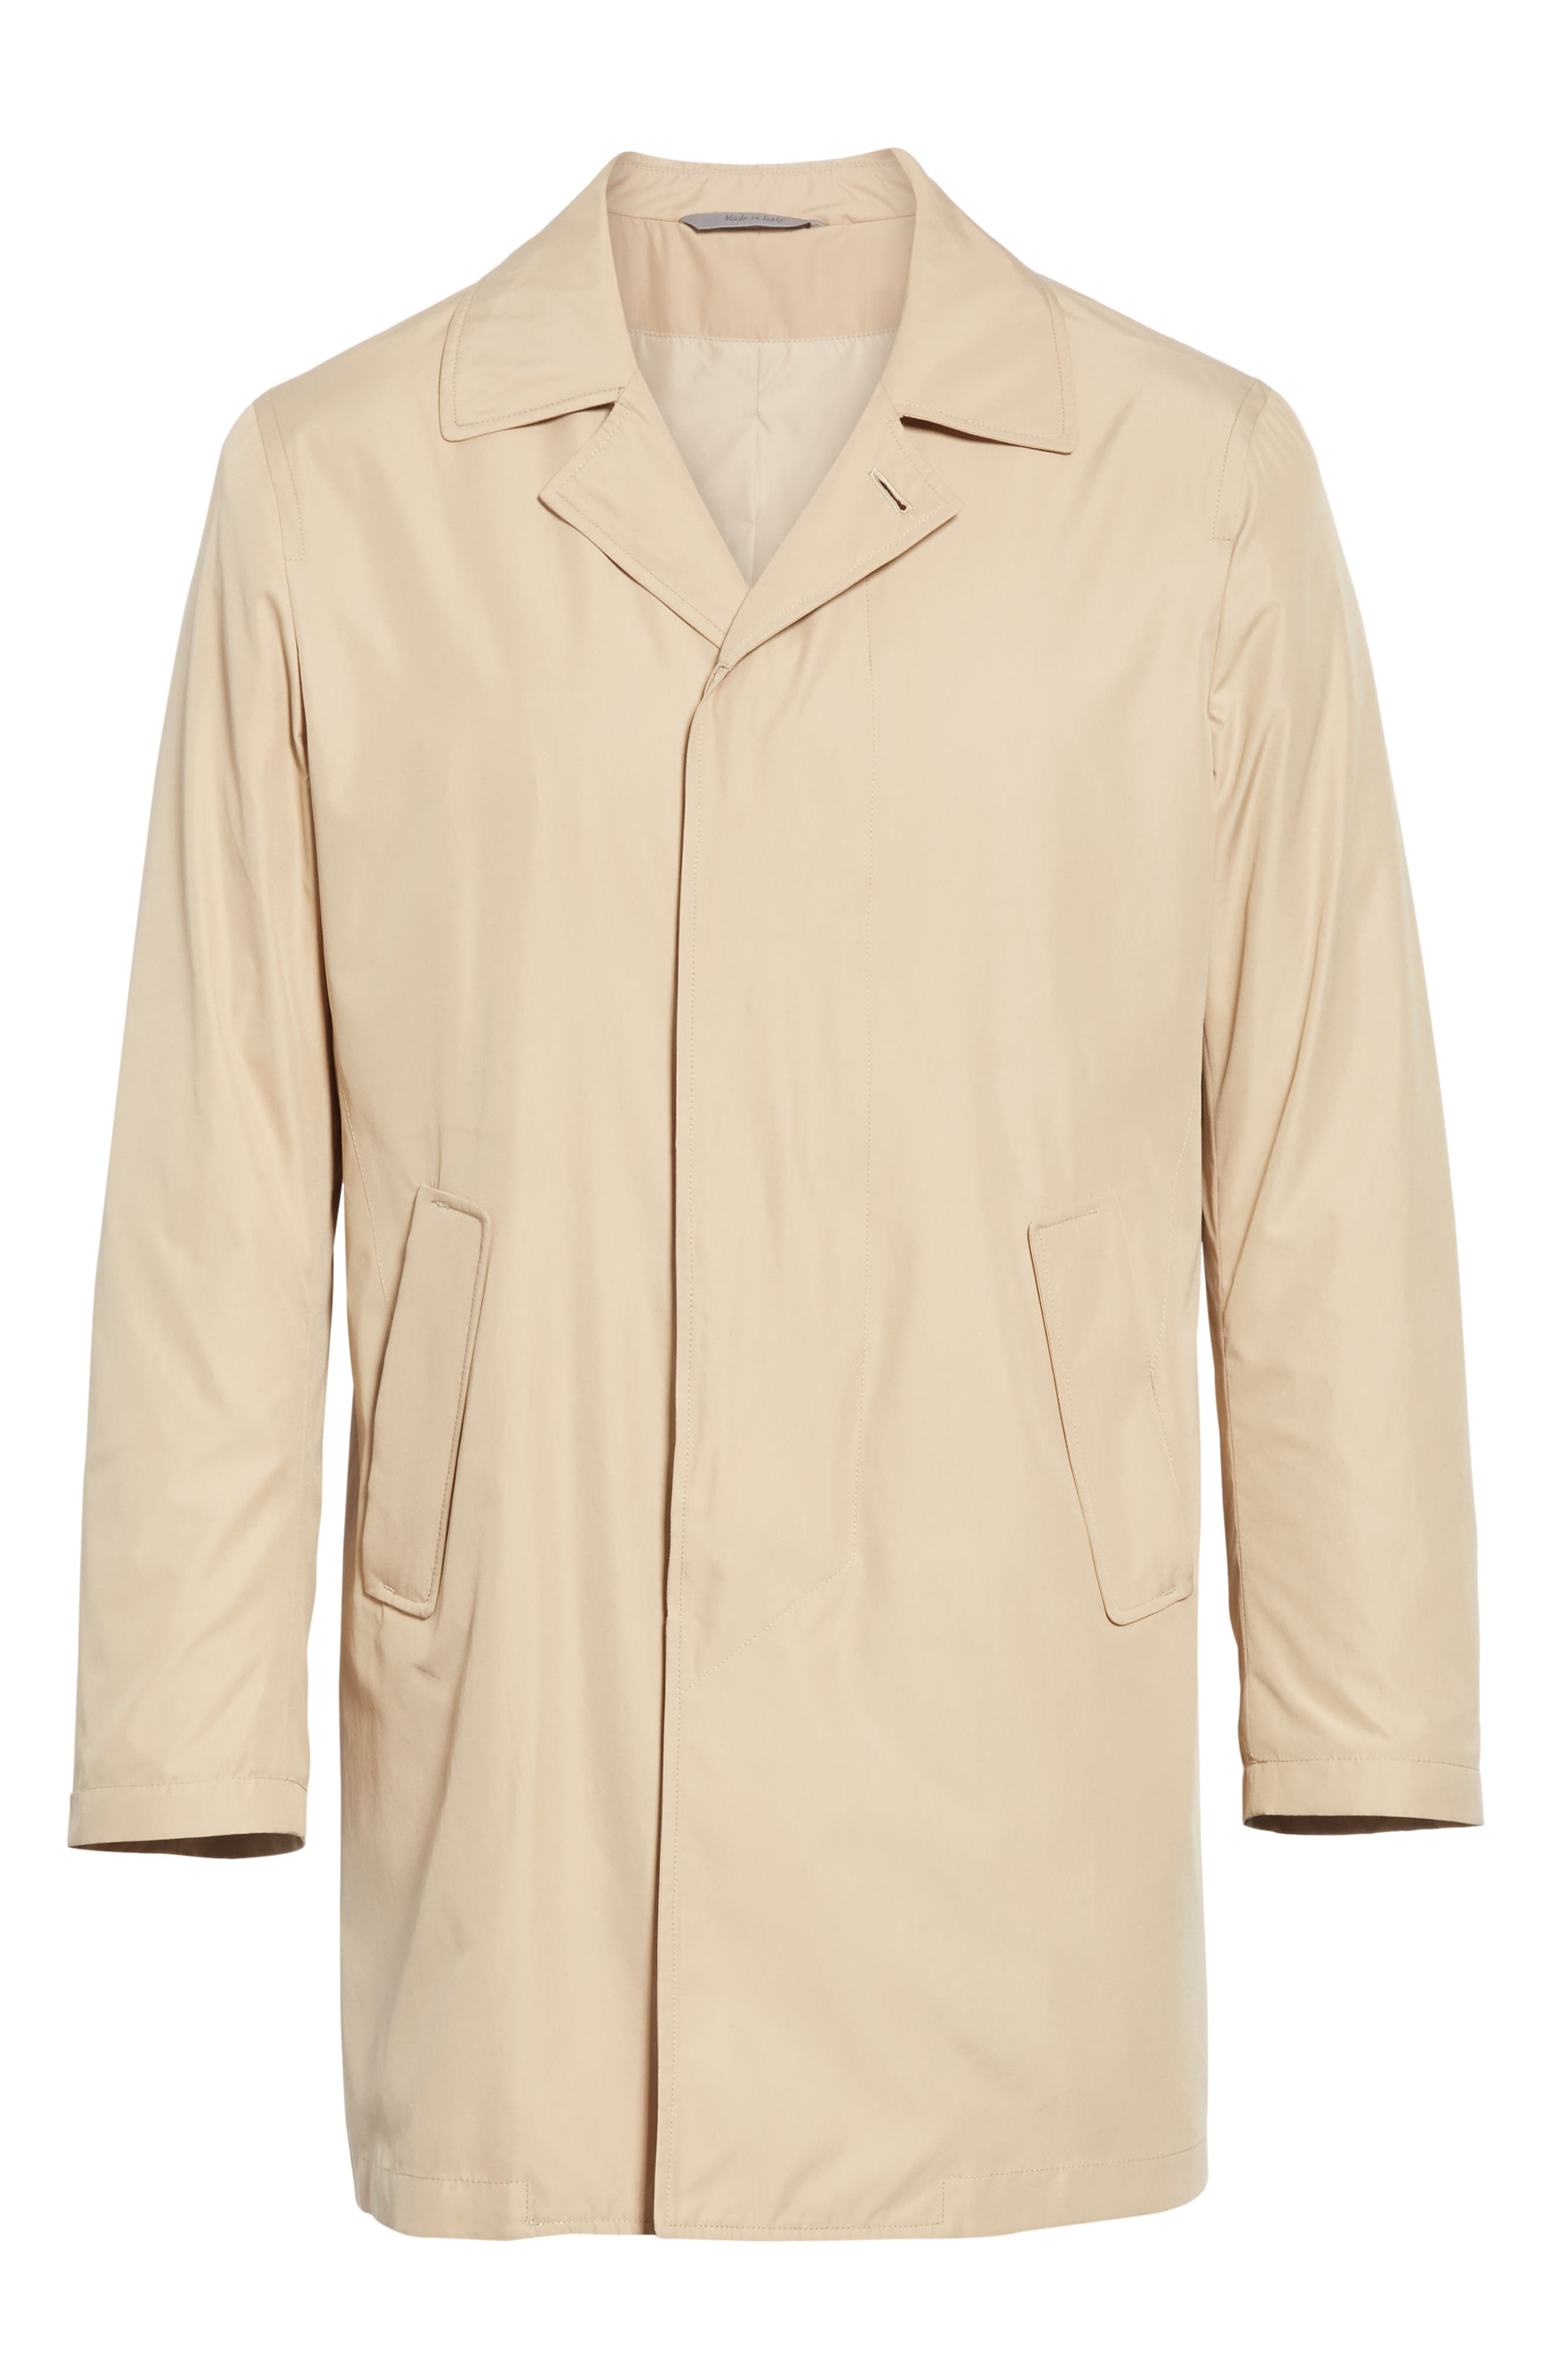 CANALI, Lightweight Overcoat, Alternate thumbnail 6, color, BEIGE